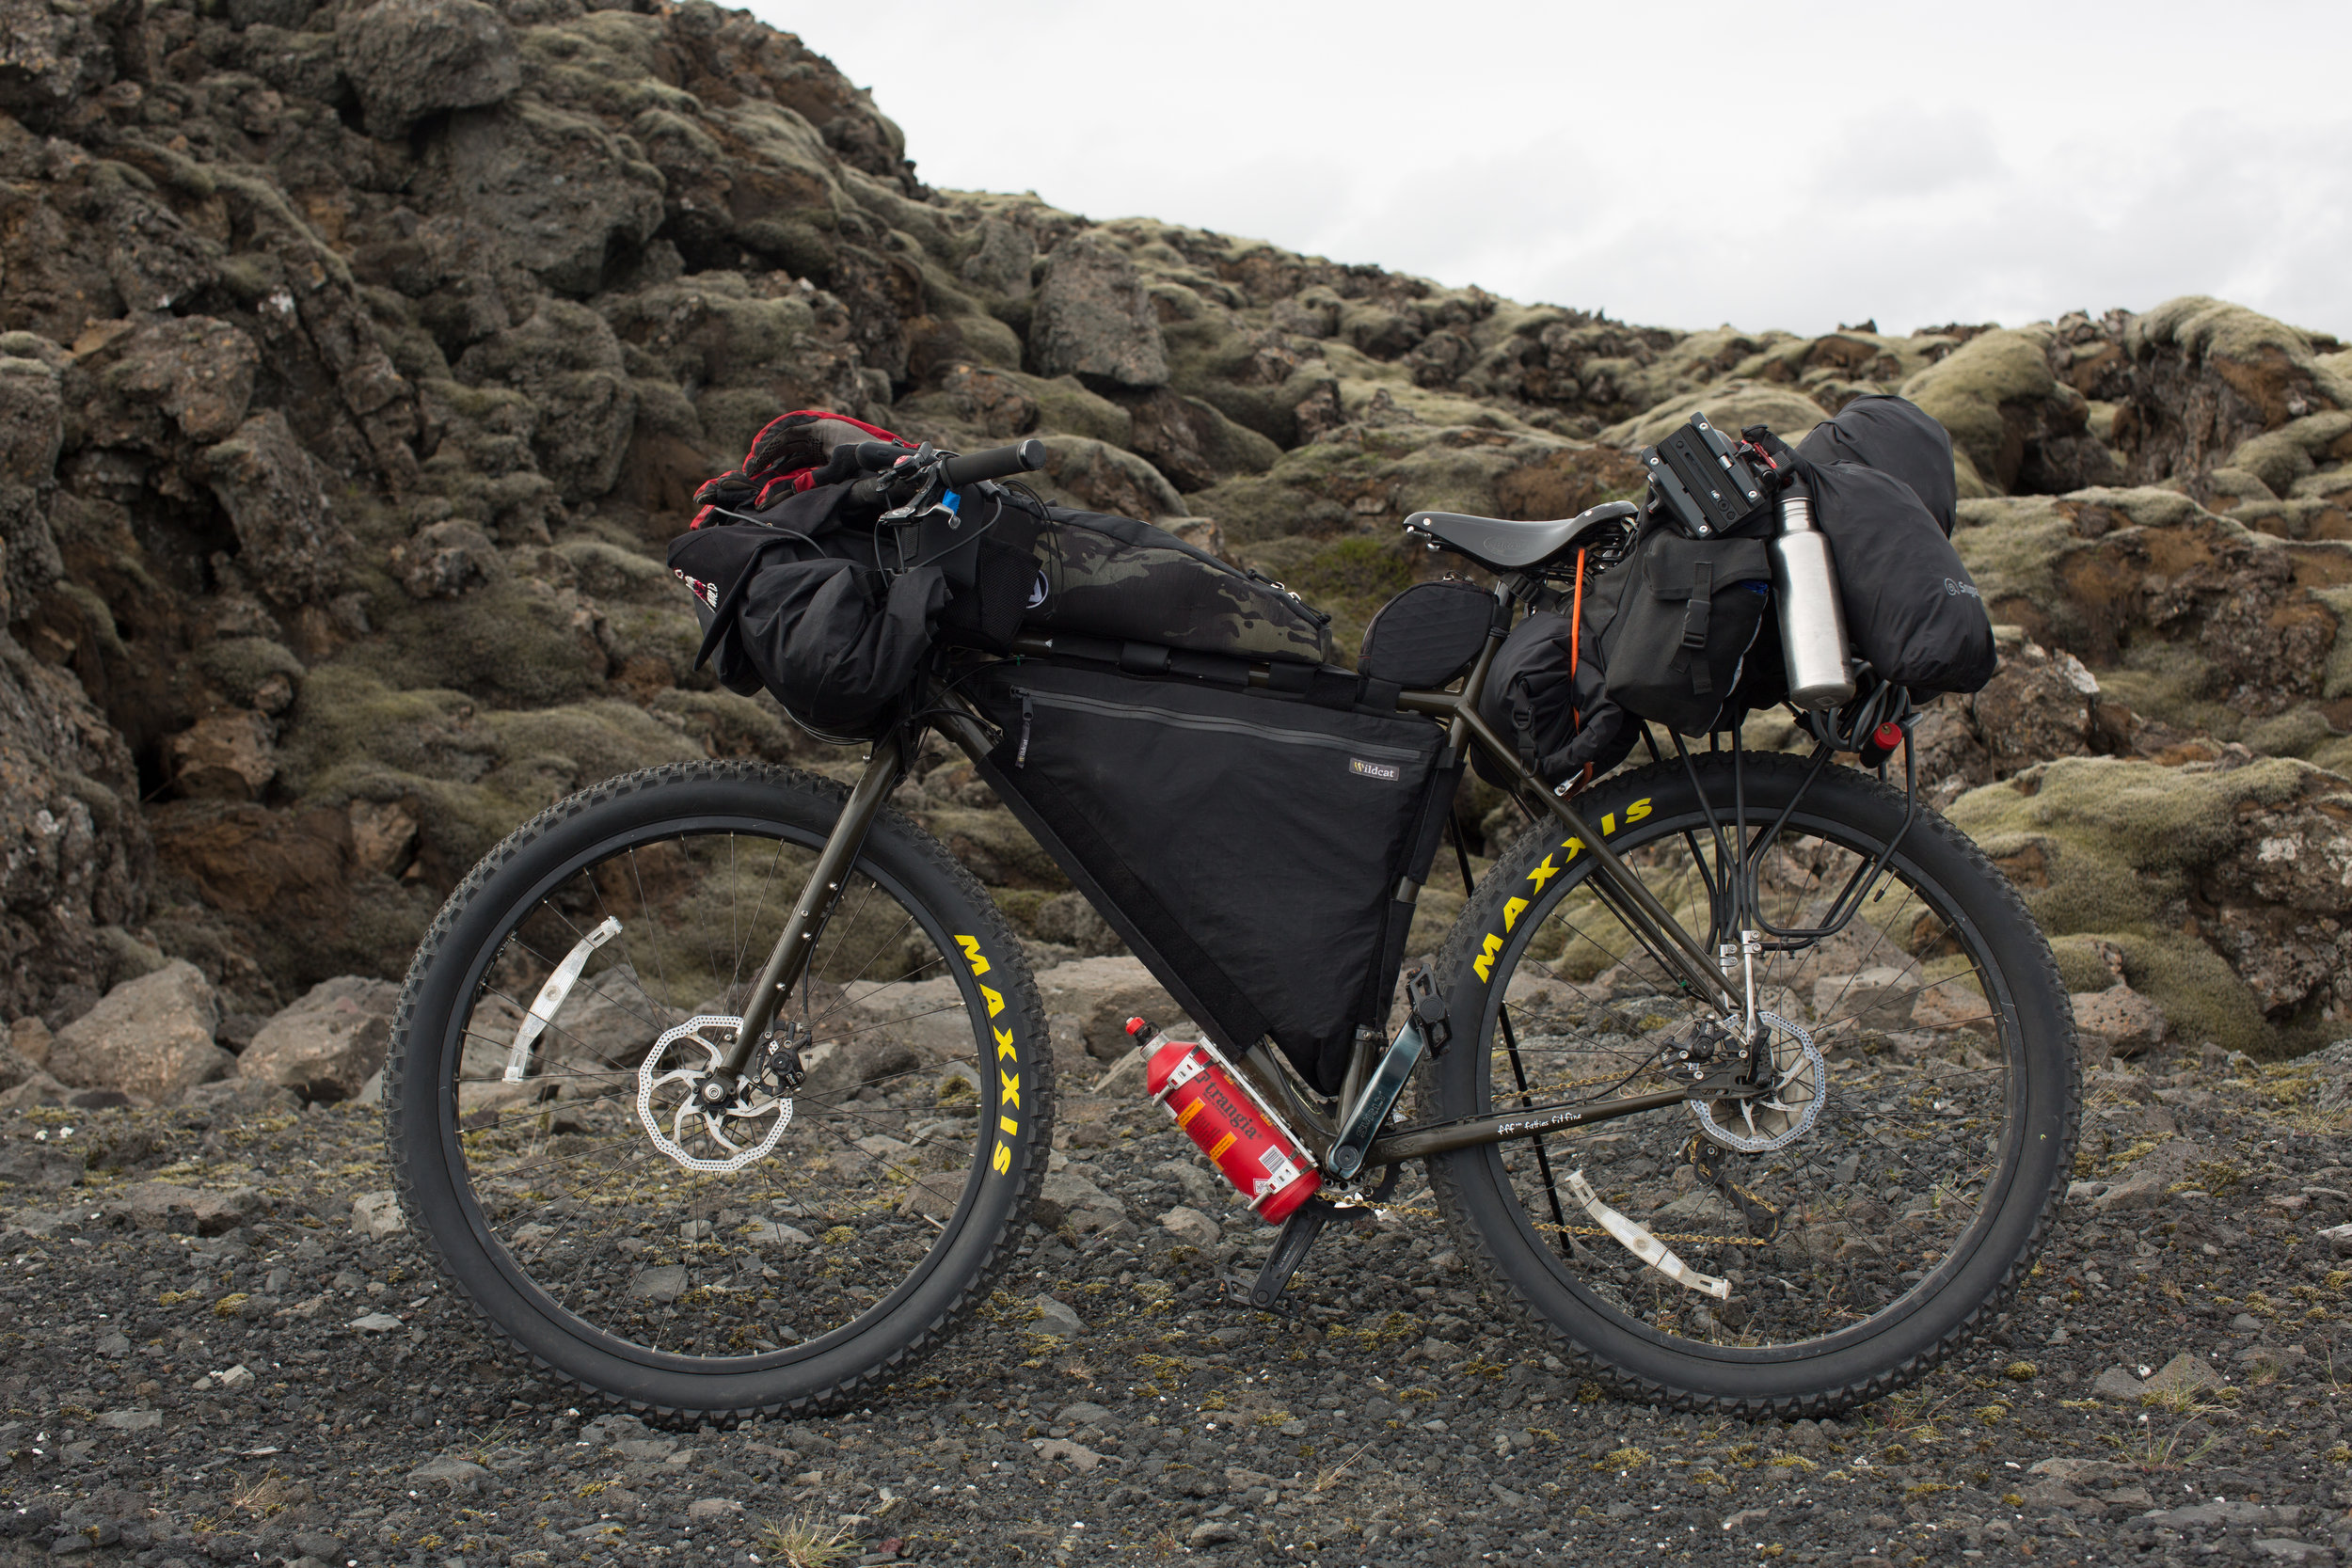 My trusted   Surly ECR   was once again the weapon of choice for the Icelandic Highlands.